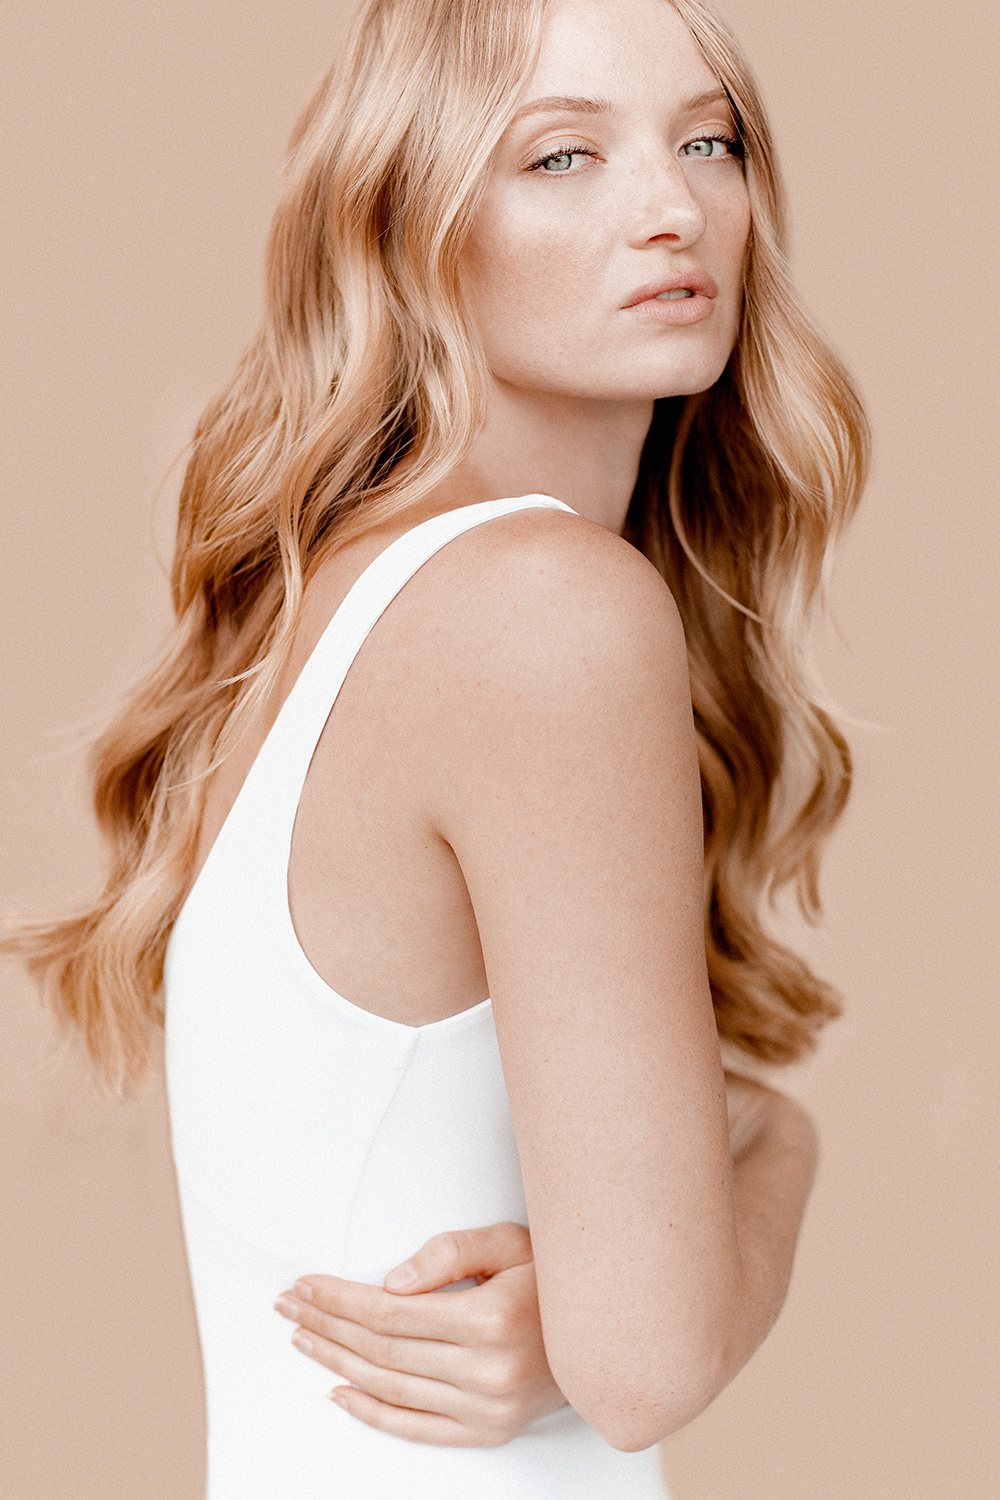 Look after your hair this summer with Soleil by Kerastase